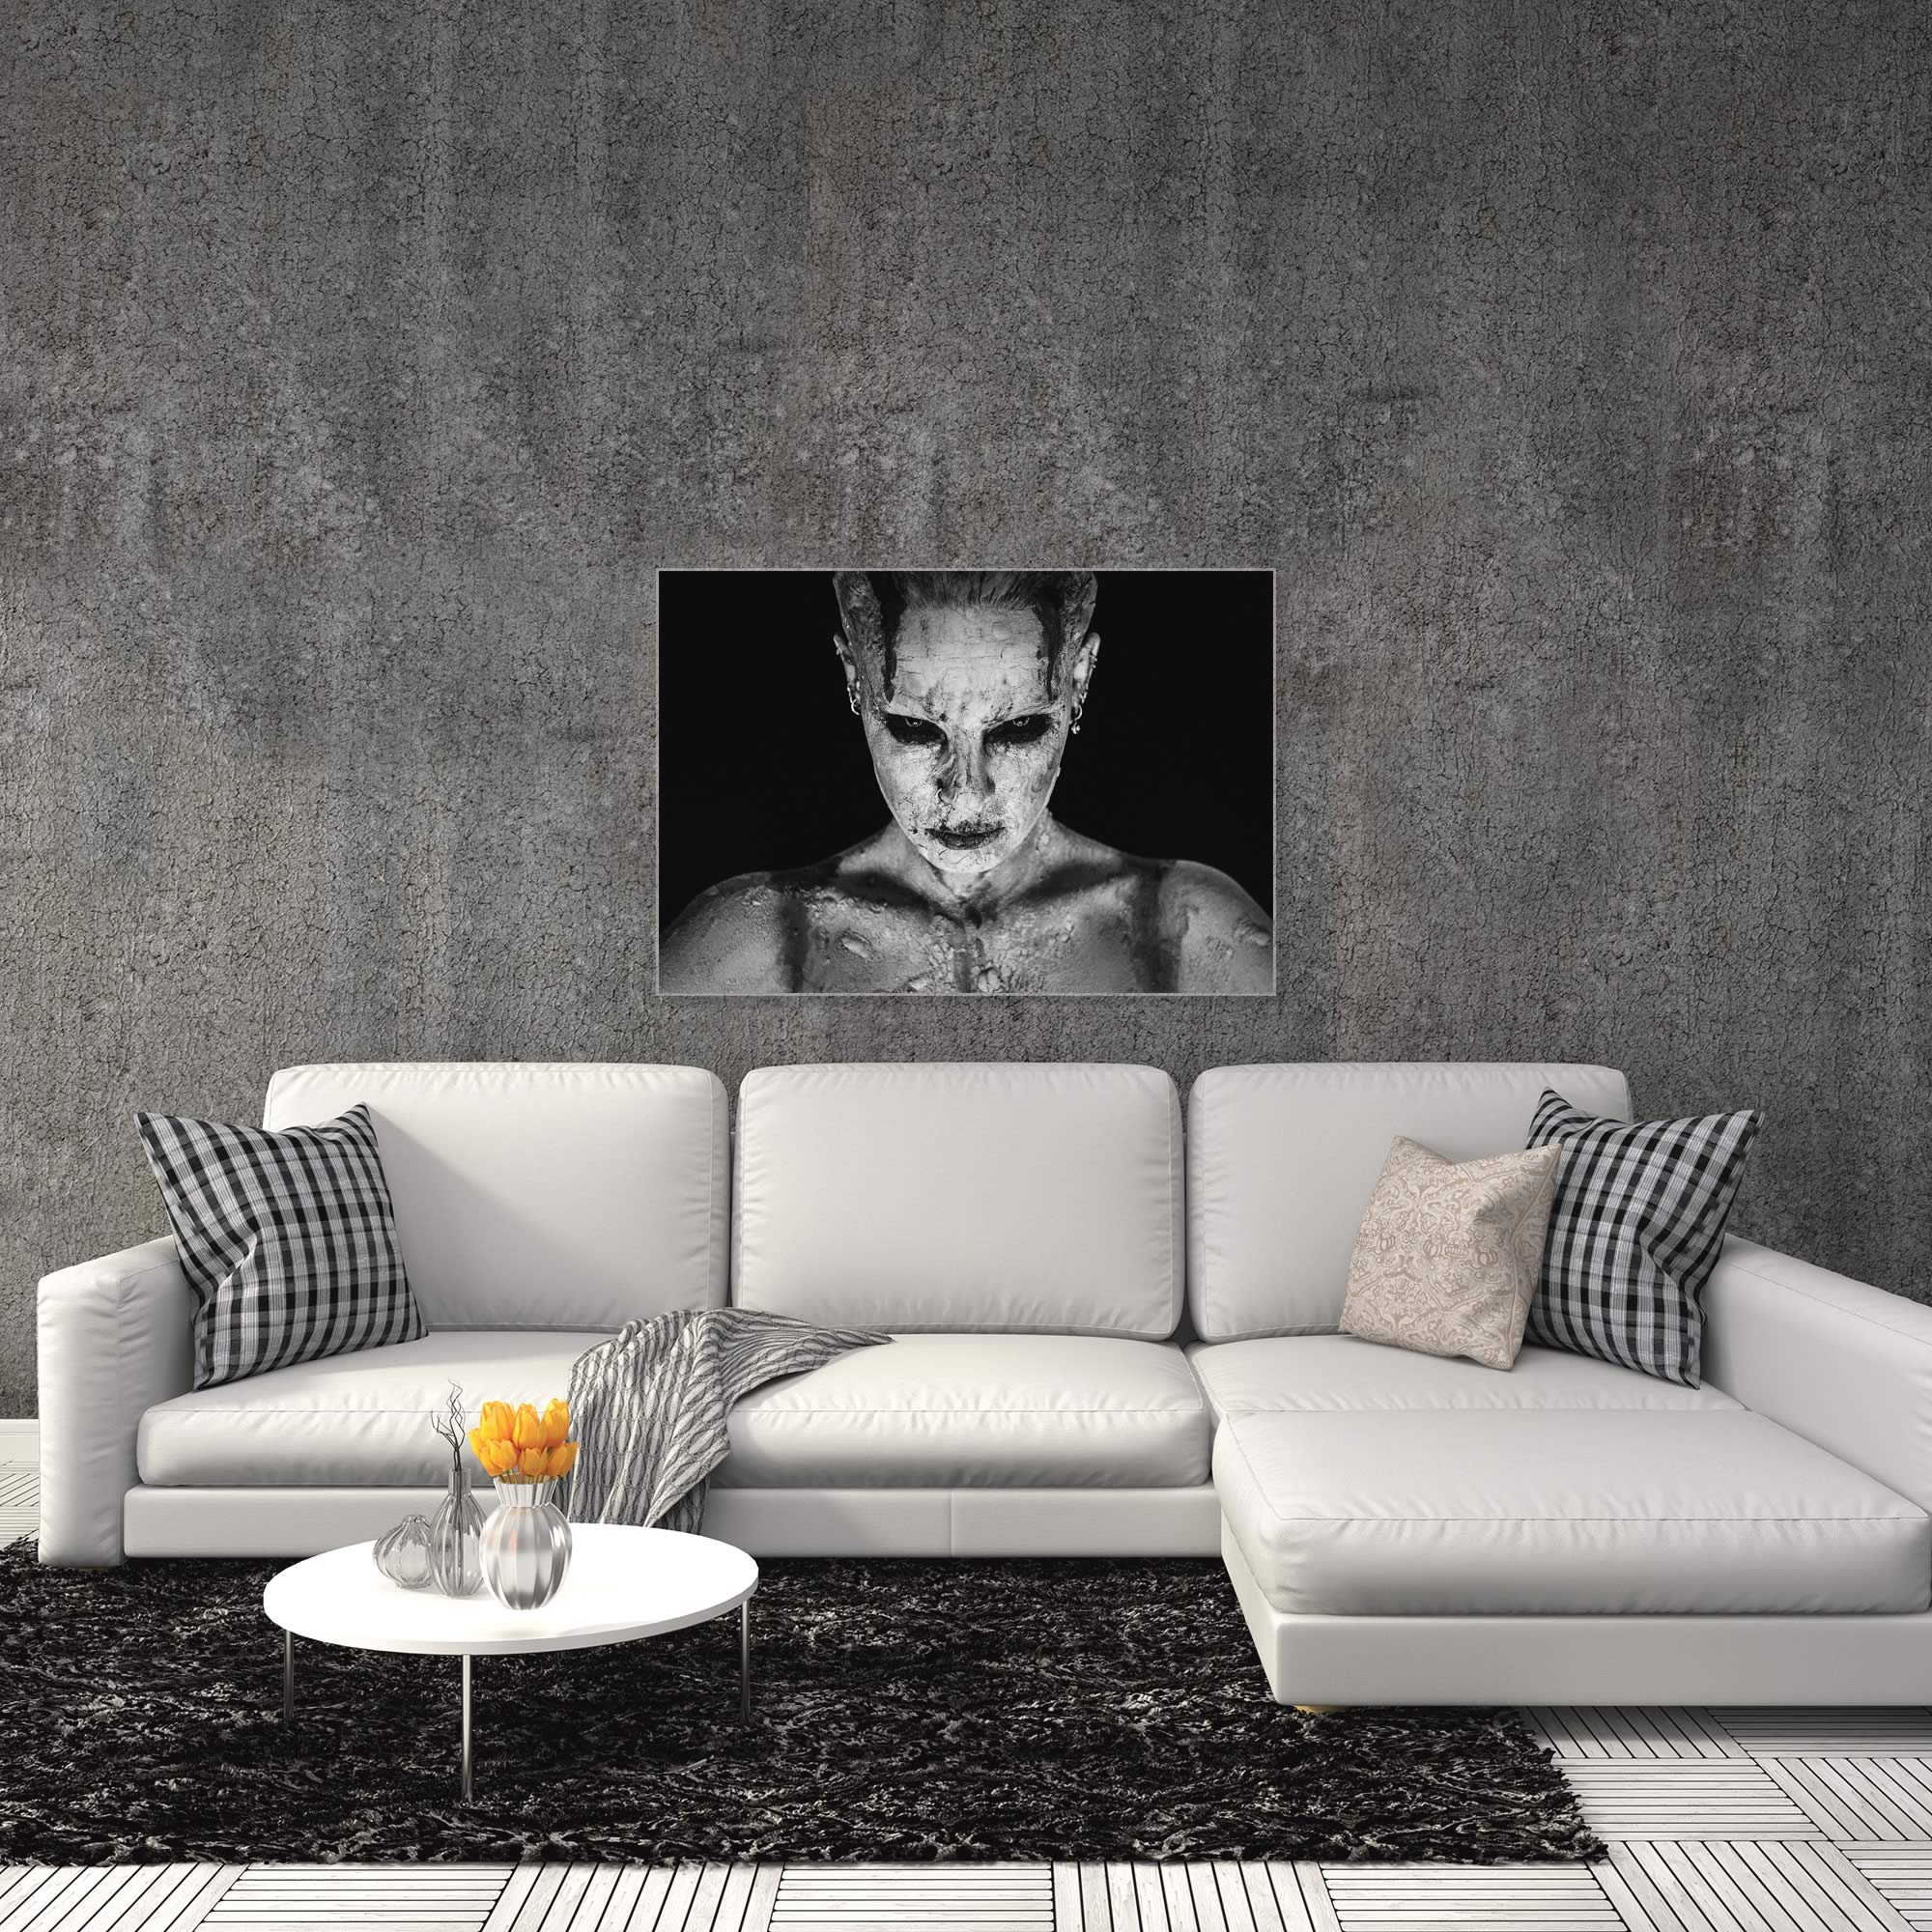 I Am Your Queen by Marco De Waal - Gothic Art on Metal or Acrylic - Alternate View 3